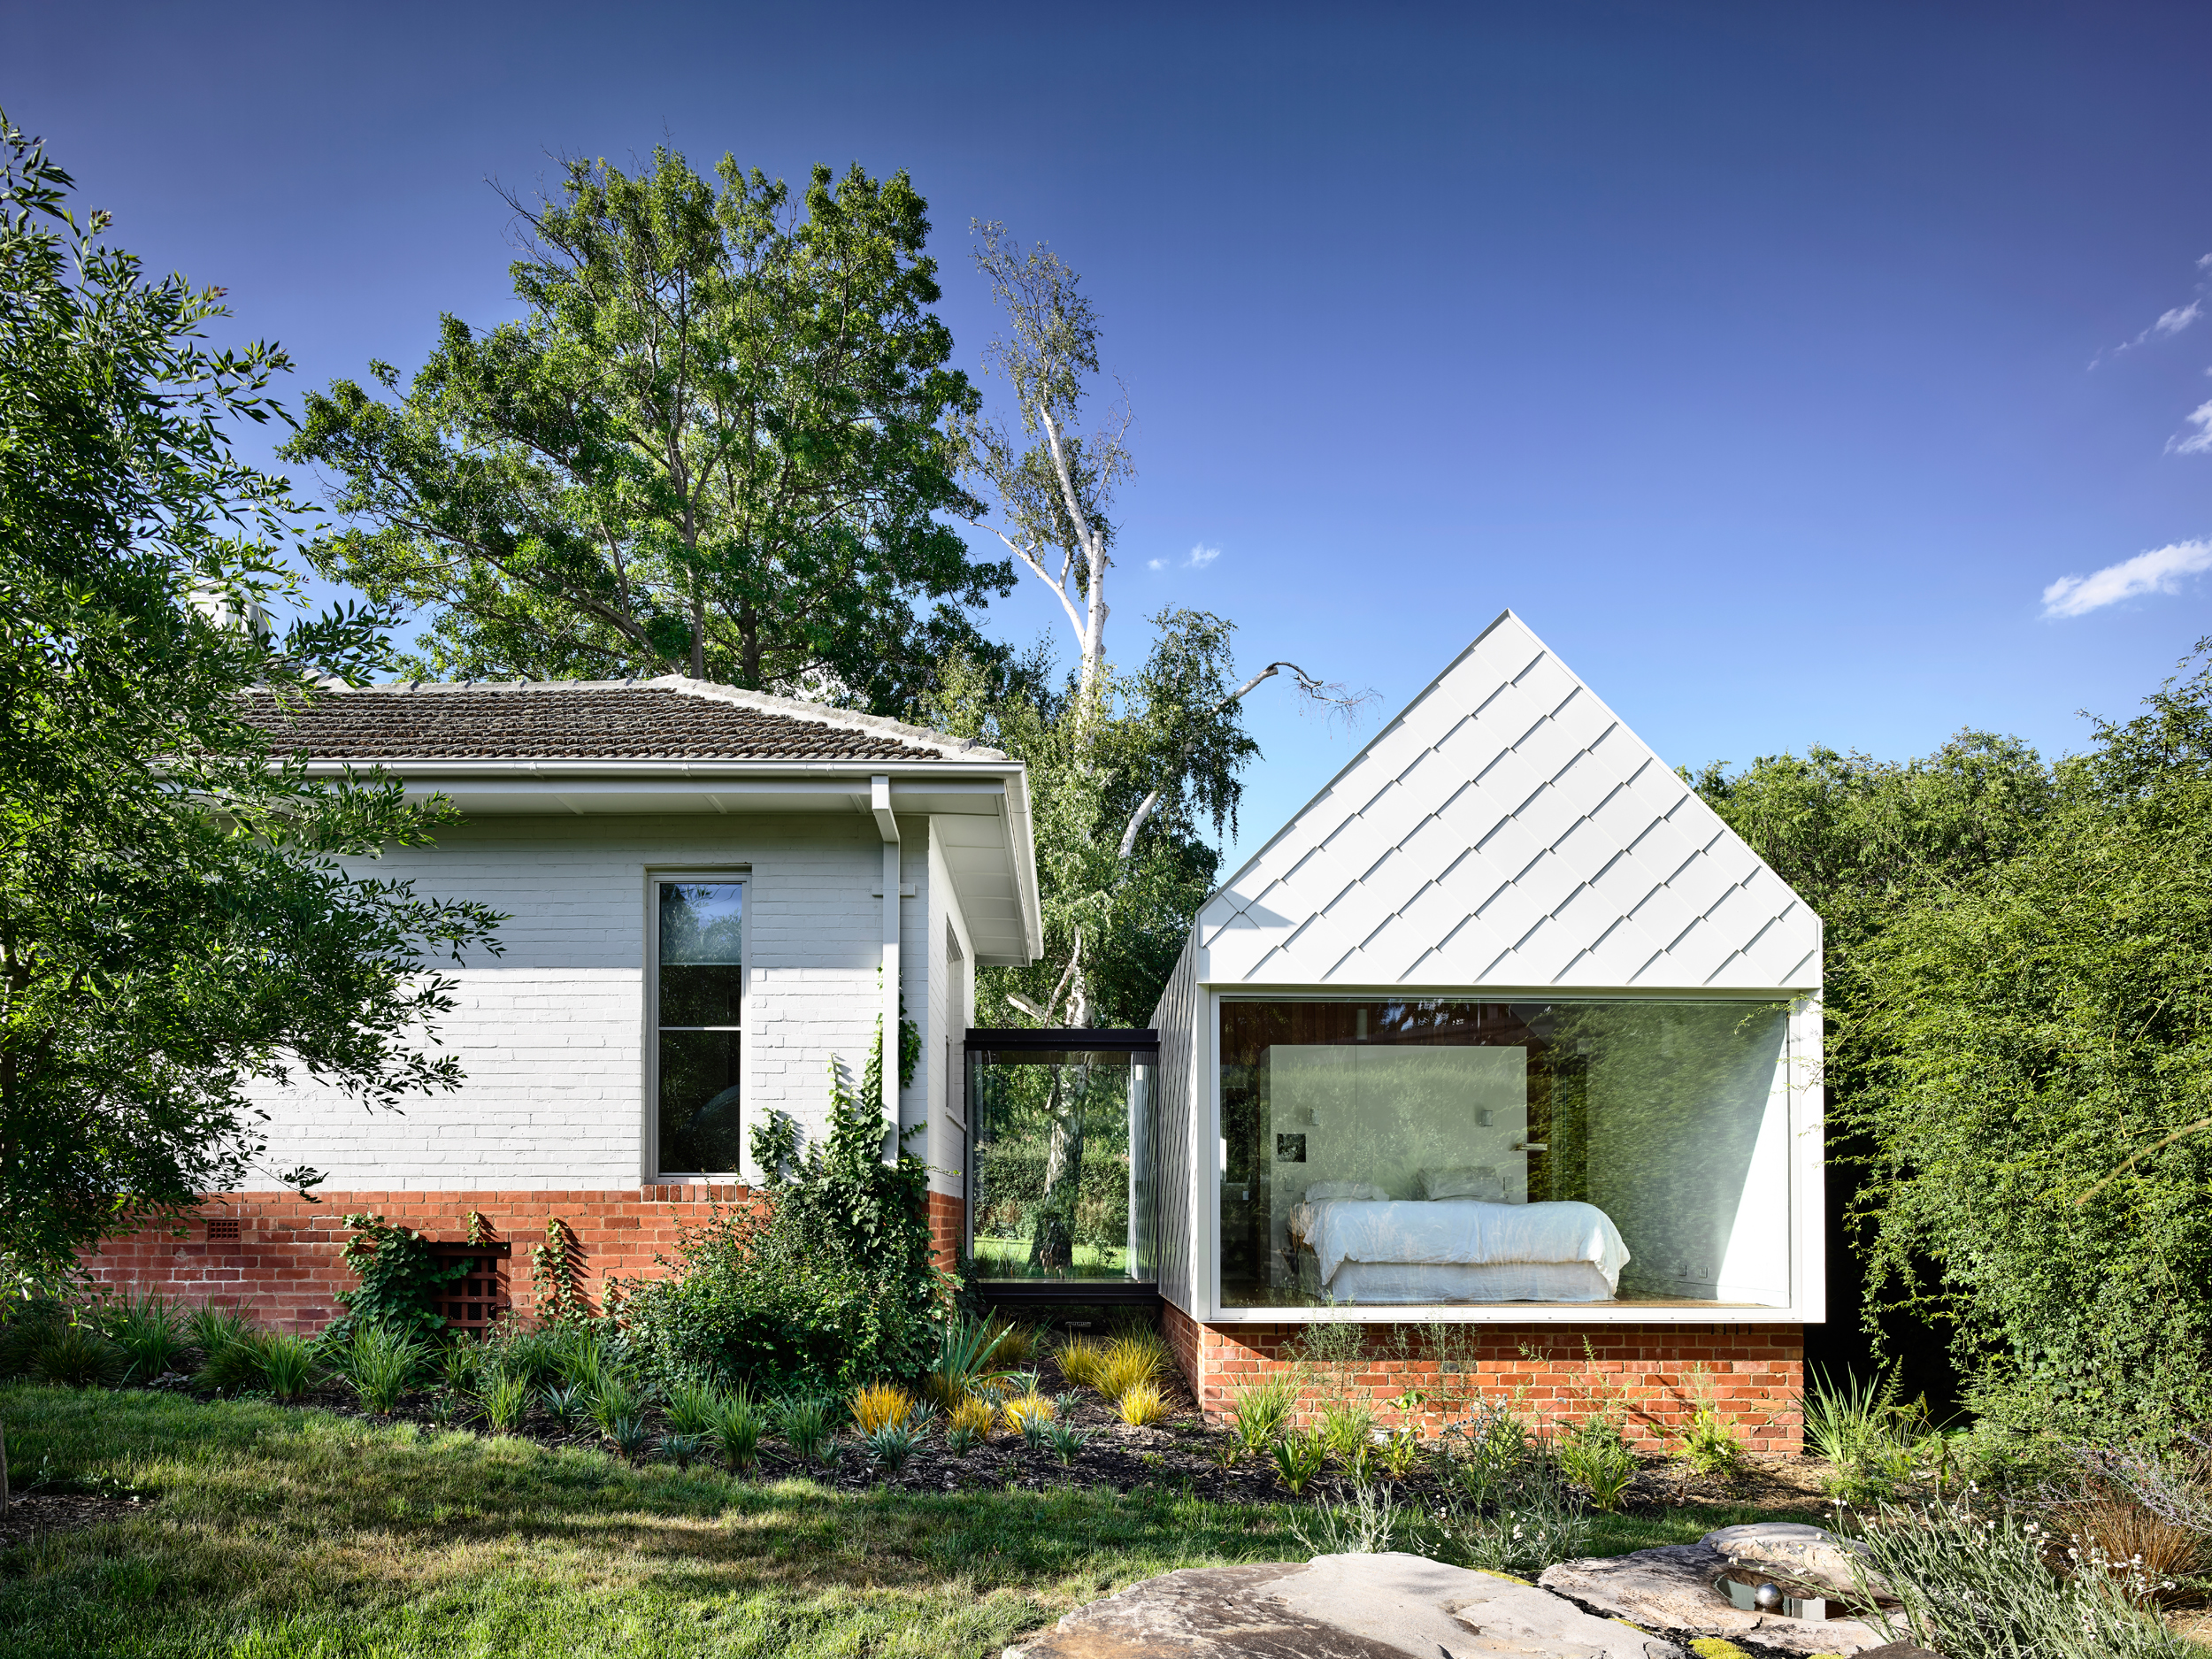 A glass-enclosed walkway connects a low-slung traditional cottage with a new pitch-roofed addition with a glass wall, which reveals a bedroom inside.